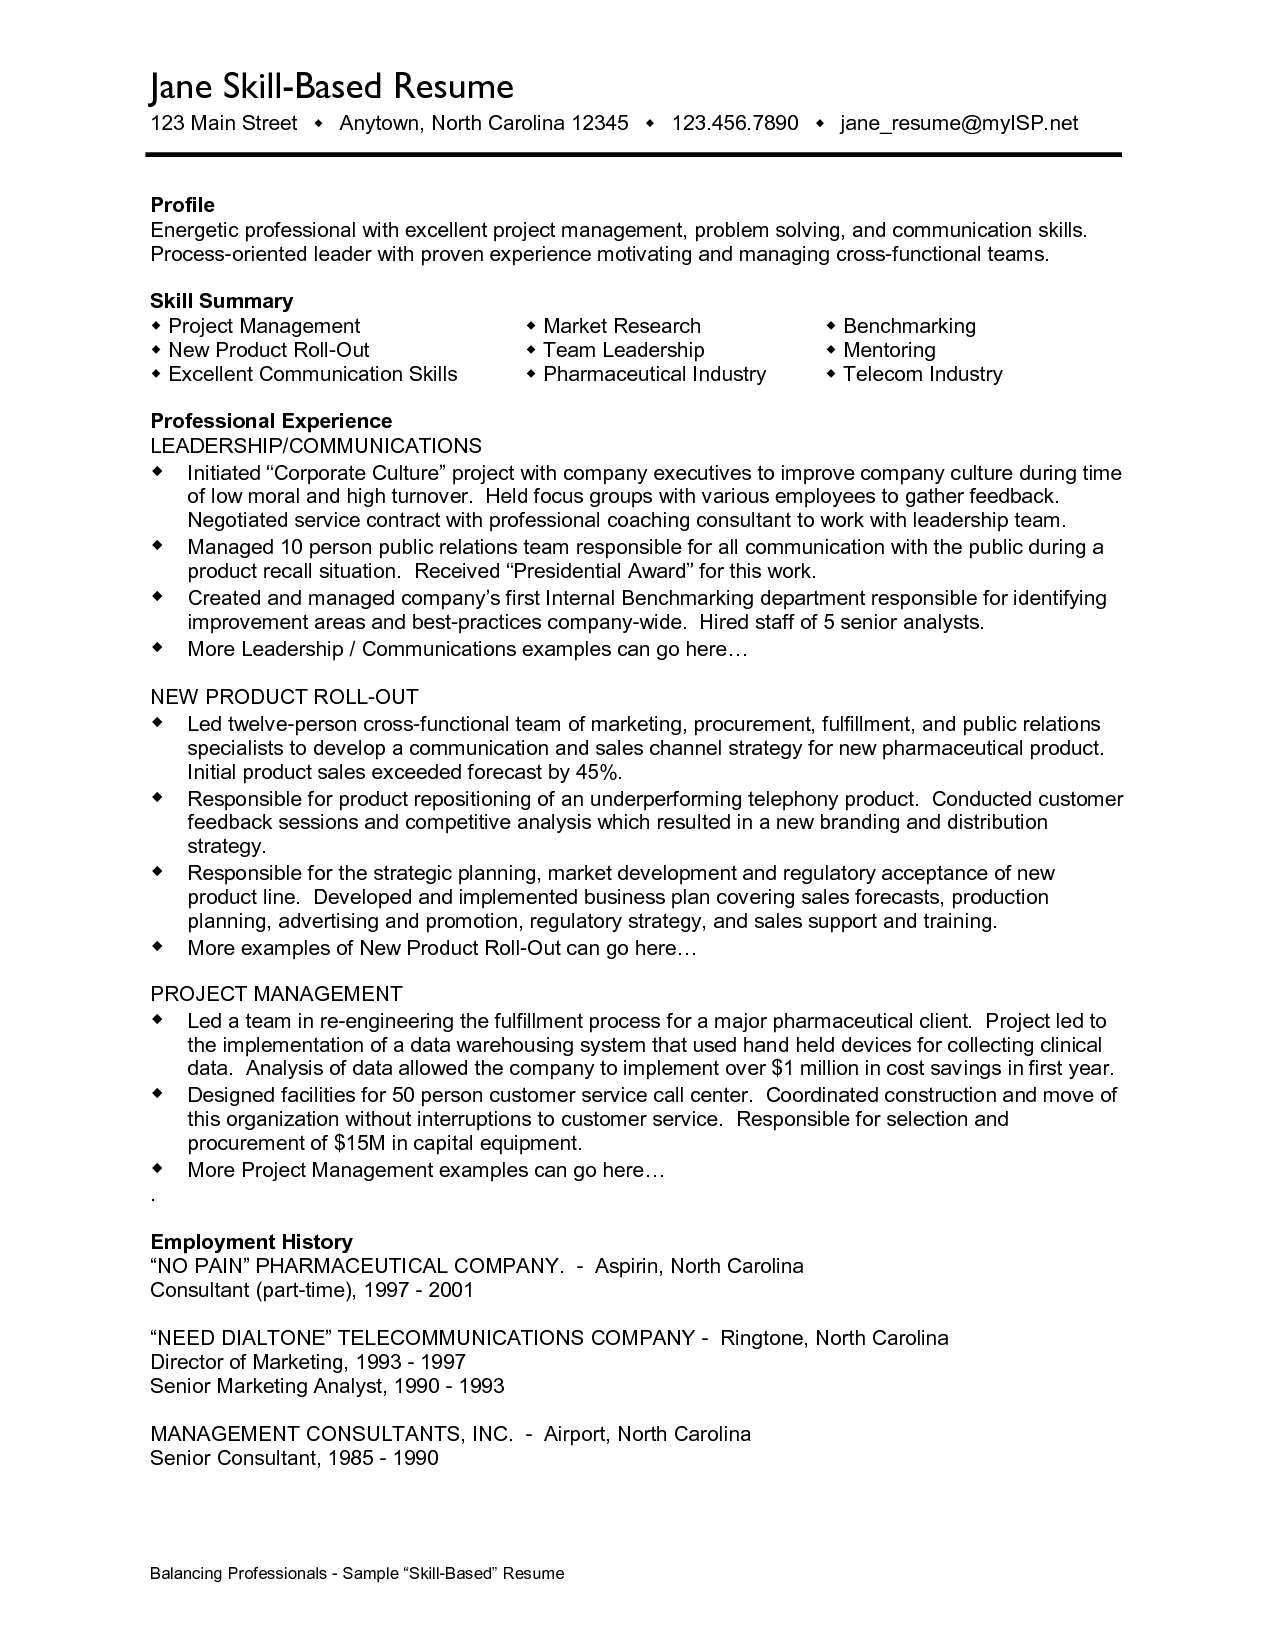 job resume communication skills  httpwwwresumecareerinfojob  also job resume communication skills  httpwwwresumecareerinfojob